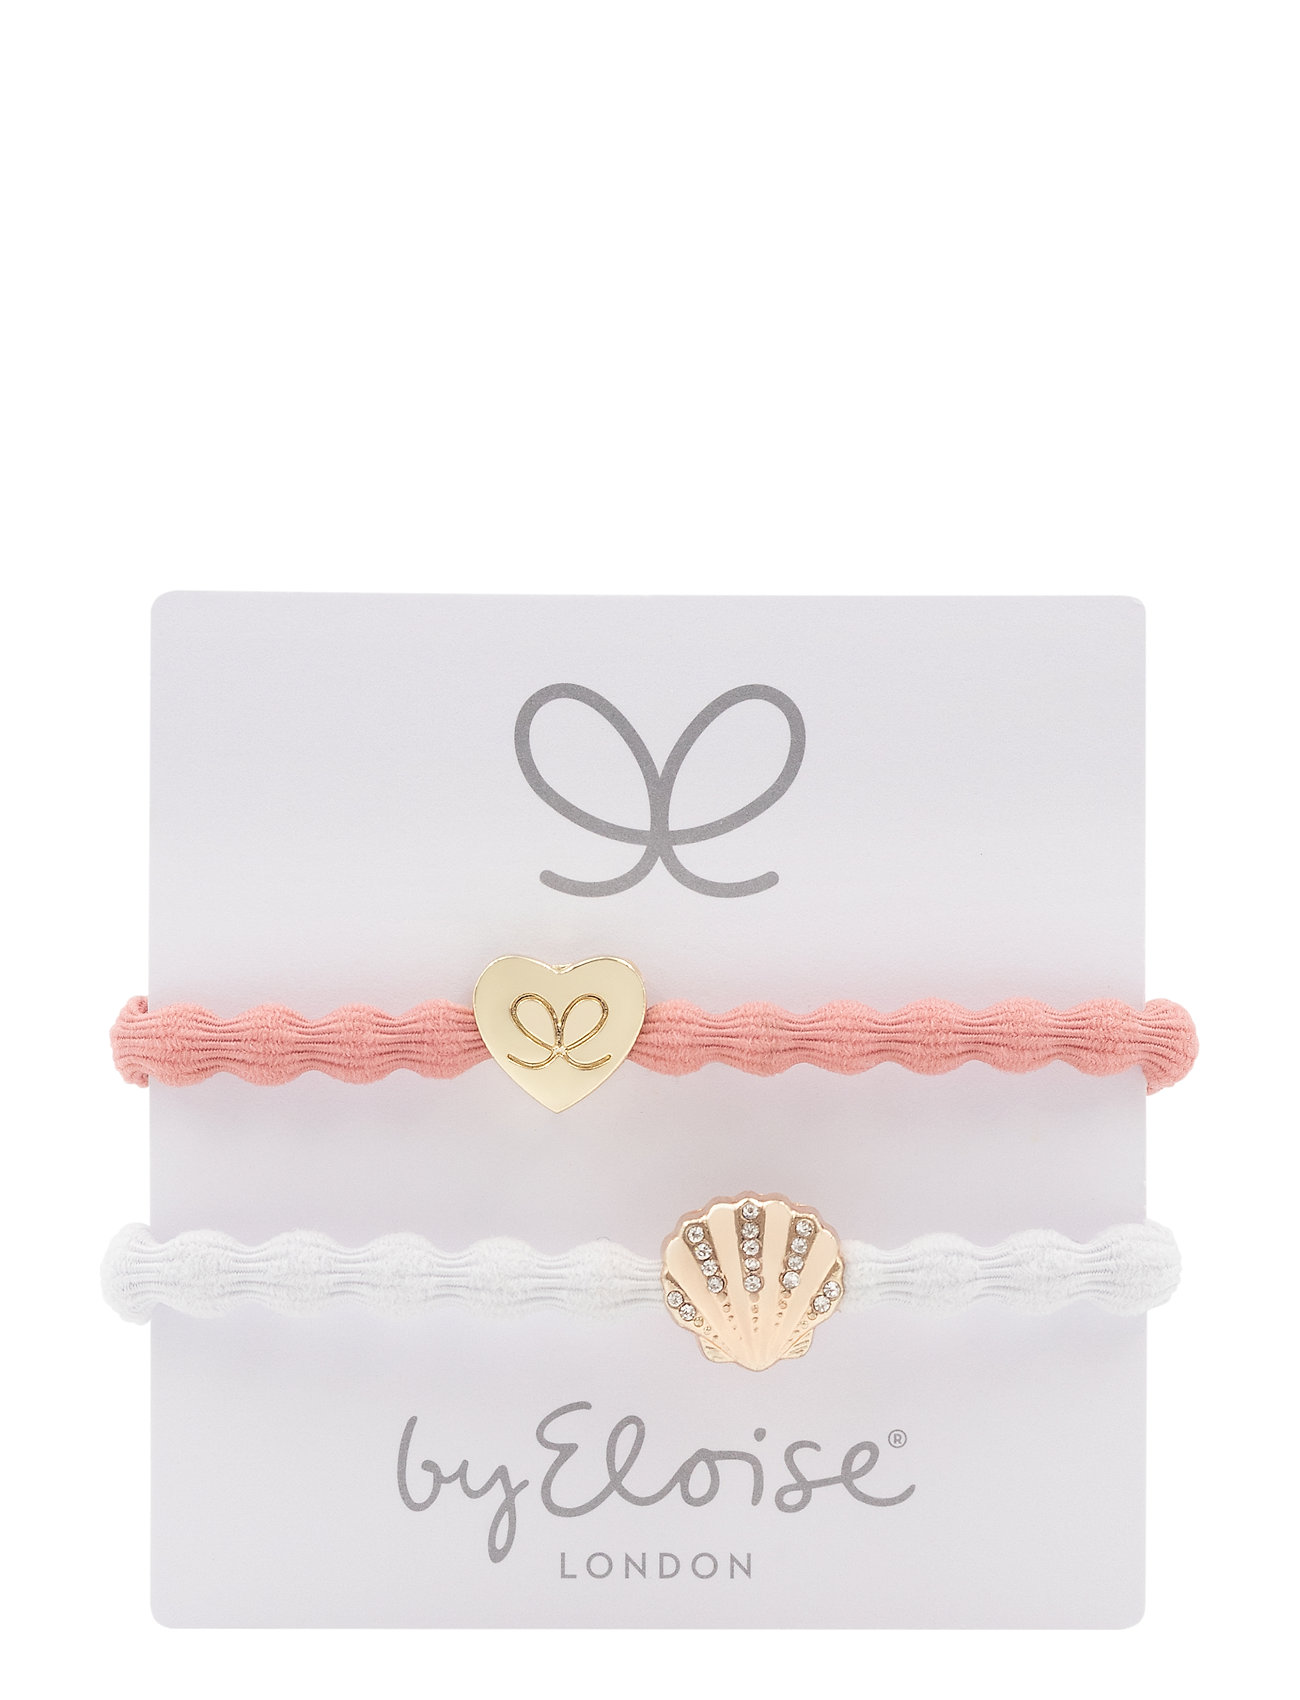 Gold Heart On Coral And Bling Seashell On White - ByEloise